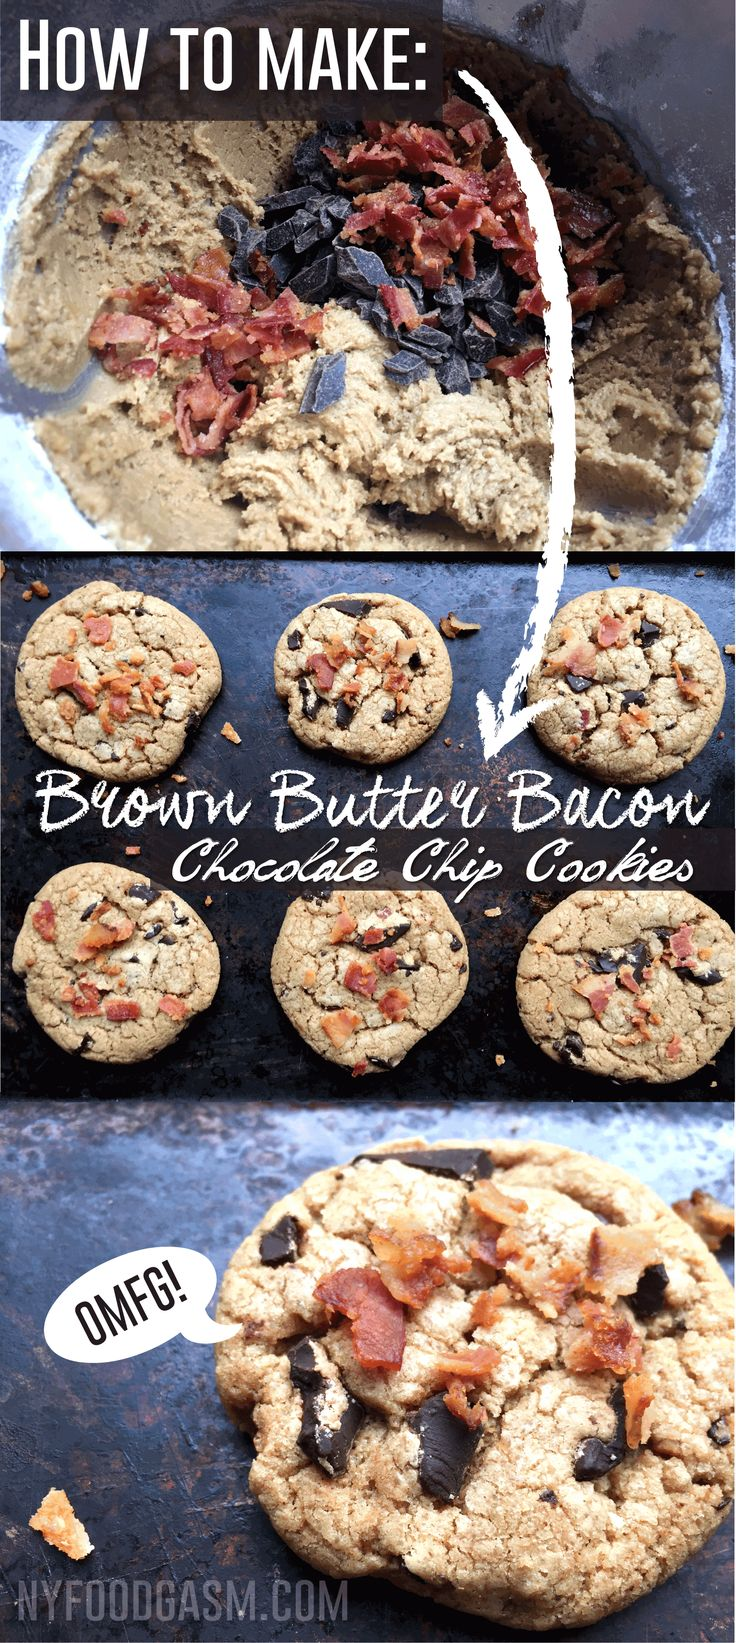 Brown Butter Bacon Chocolate Chip Cookie